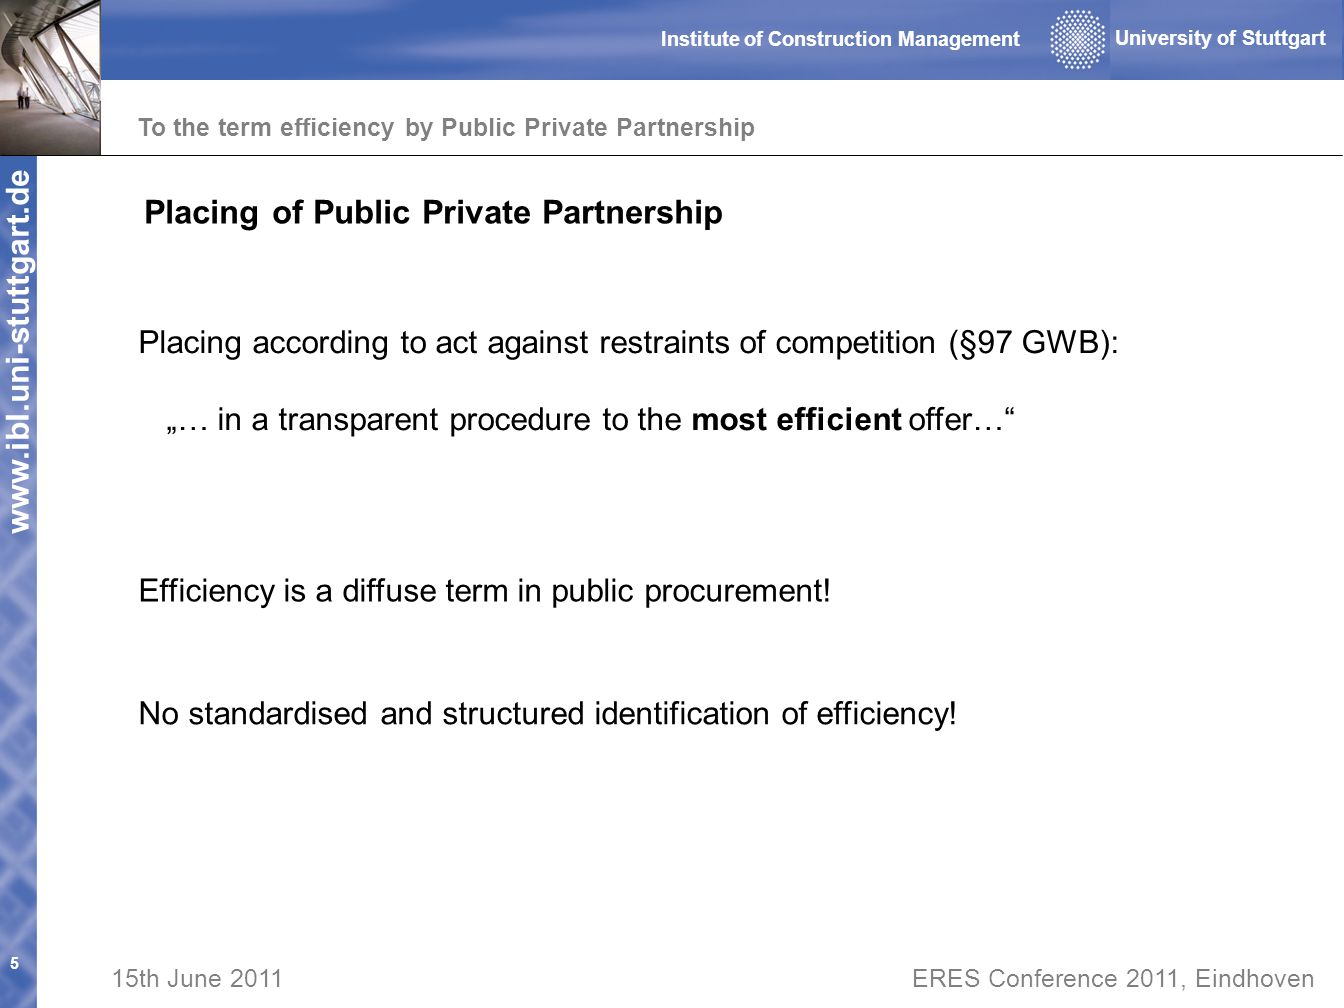 www.ibl.uni-stuttgart.de To the term efficiency by Public Private Partnership 5 University of Stuttgart Institute of Construction Management 15th June 2011ERES Conference 2011, Eindhoven Placing of Public Private Partnership Placing according to act against restraints of competition (§97 GWB): … in a transparent procedure to the most efficient offer… Efficiency is a diffuse term in public procurement.